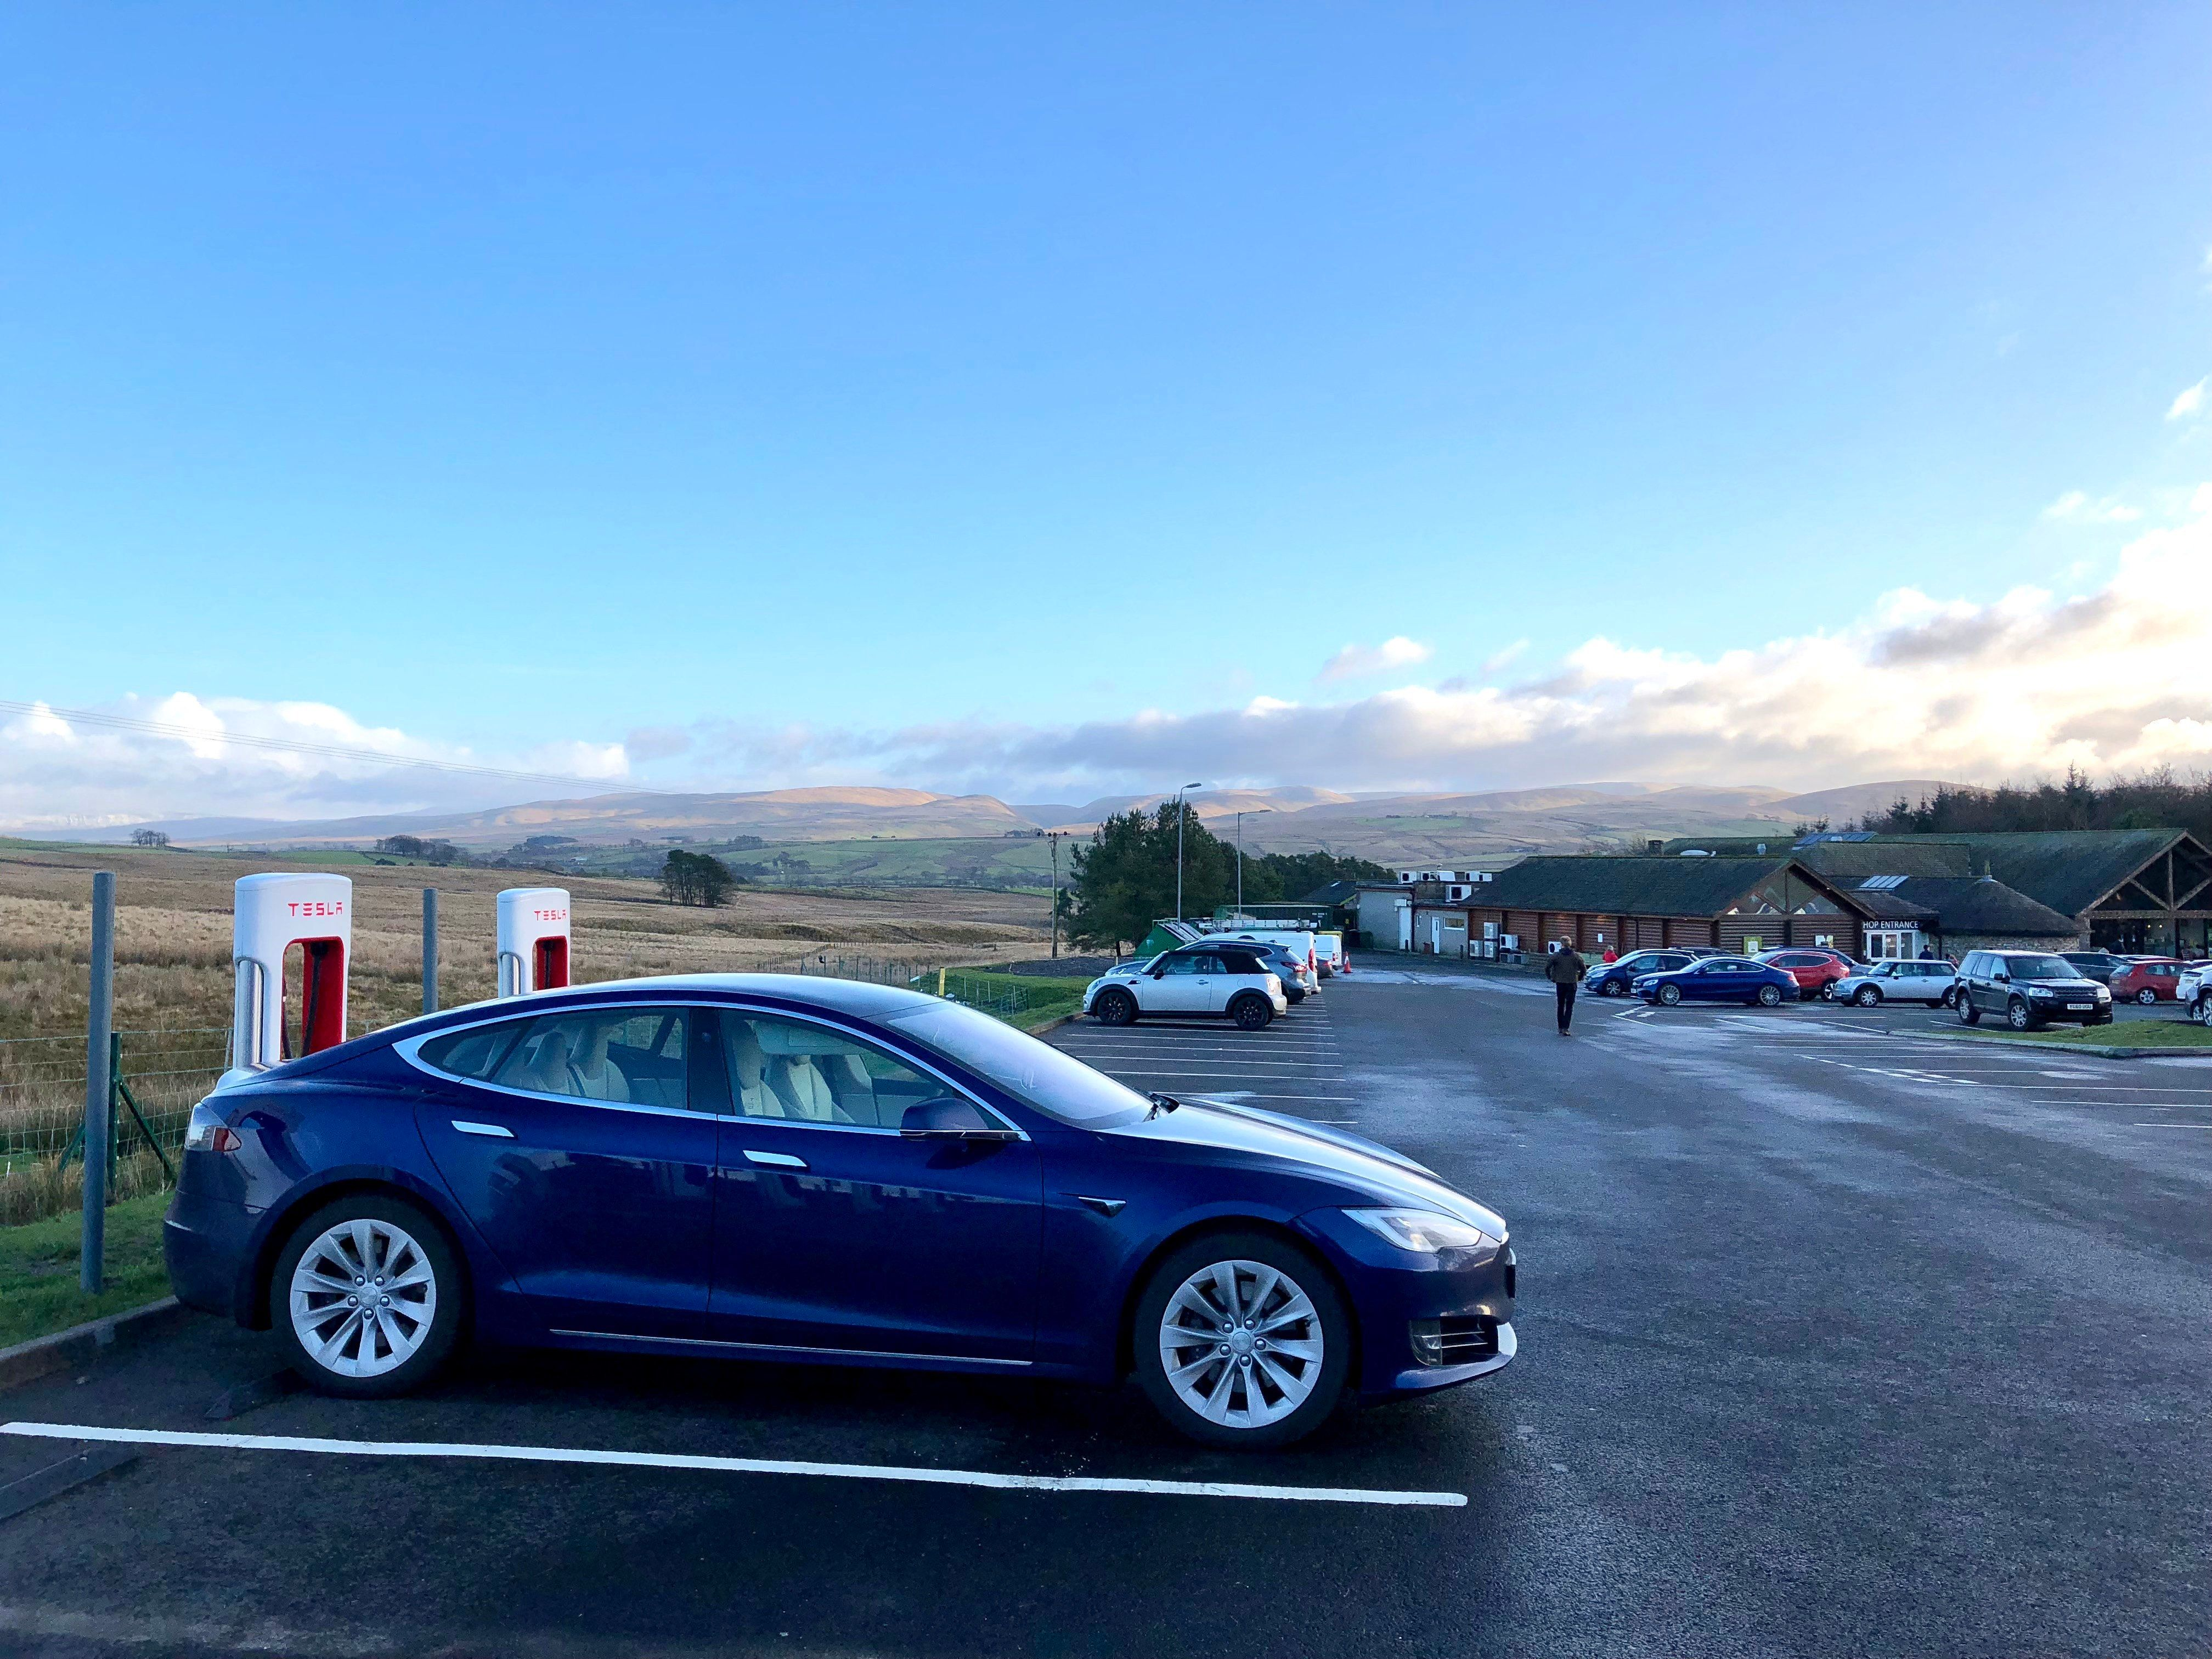 Tesla Model S: We Let An Electric Car Drive Itself 800 Miles, It Was